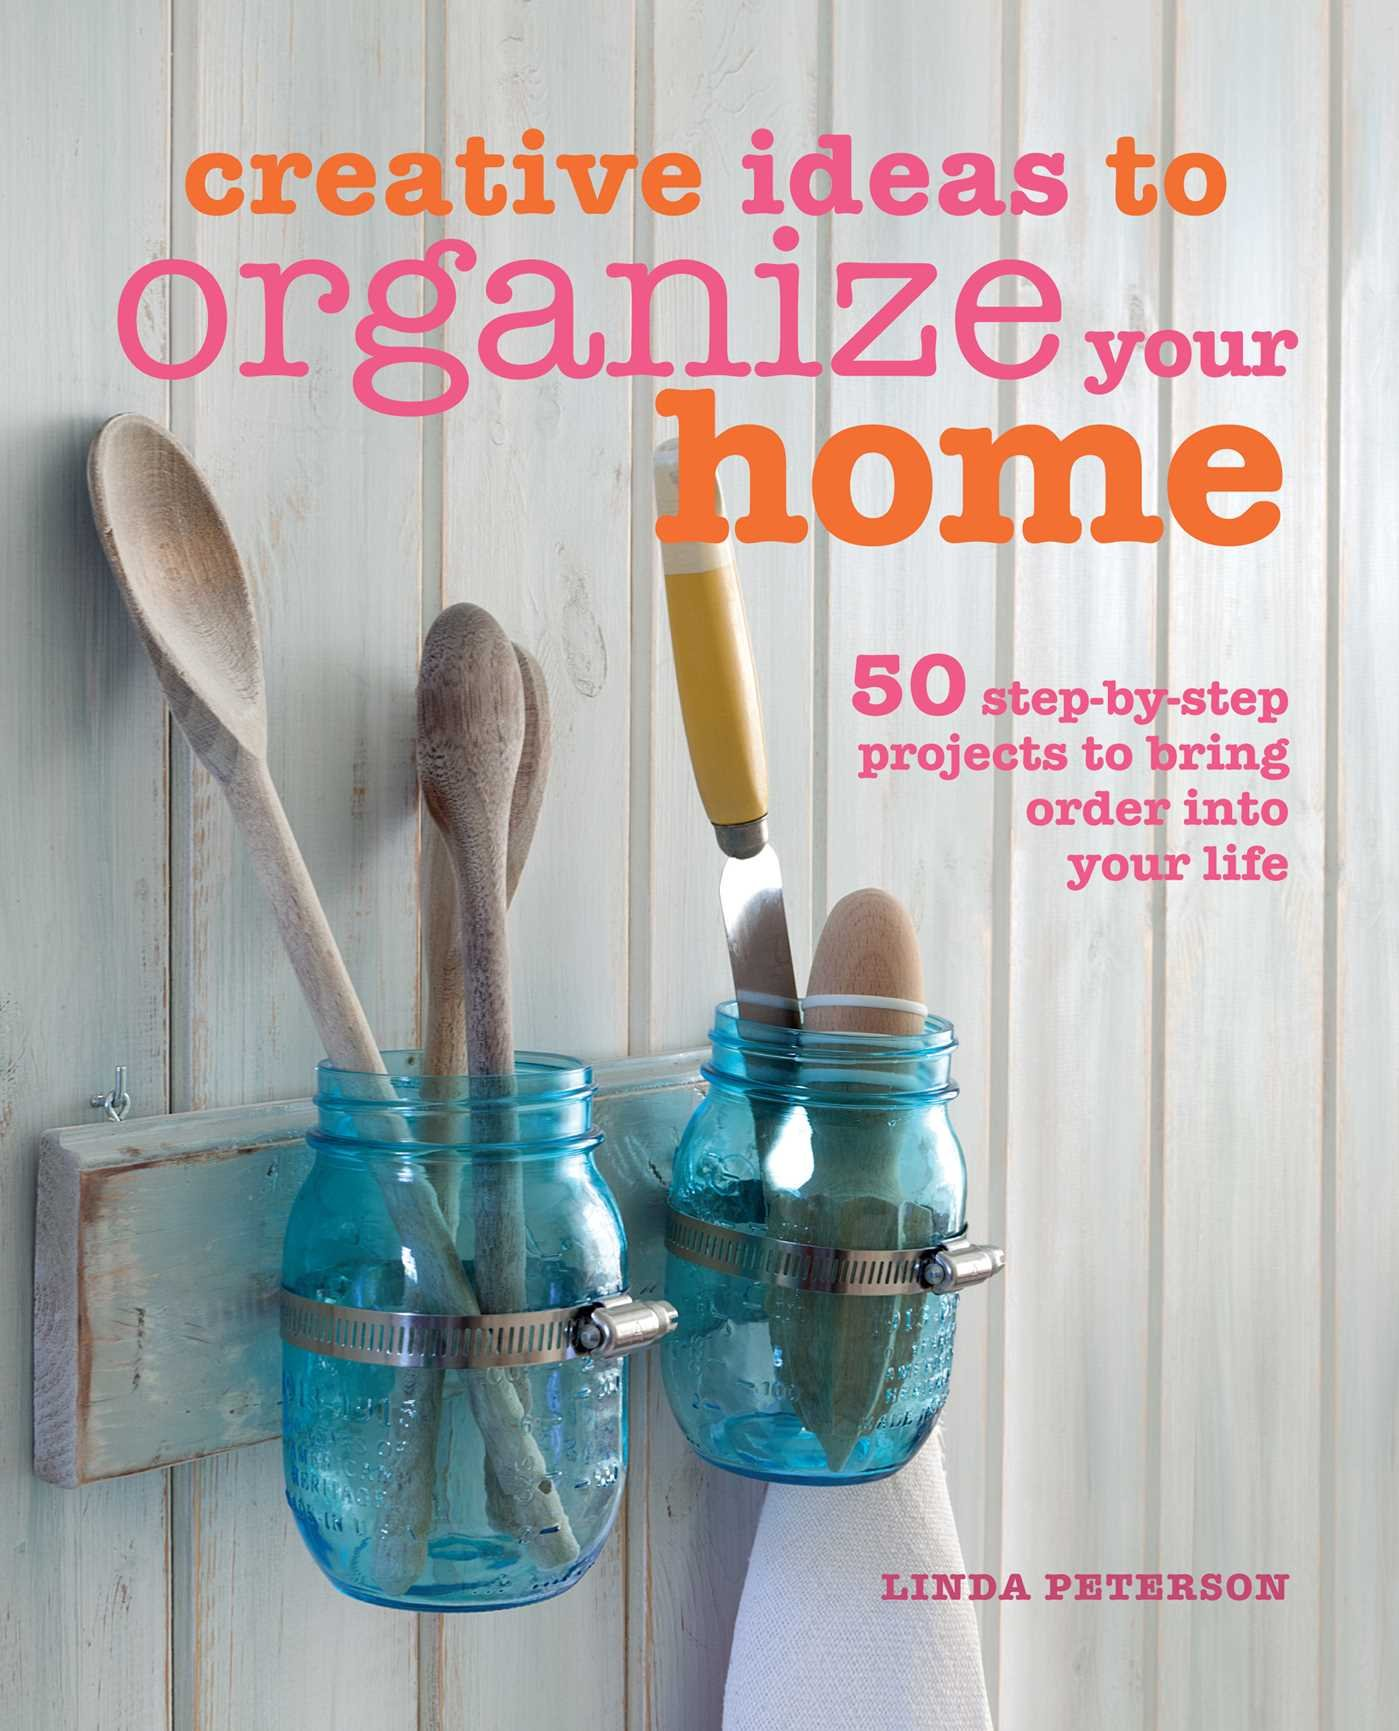 Creative Ideas to Organize Your Home: 50 step-by-step projects to bring  order into your life: Linda Peterson: 9781782490975: Amazon.com: Books